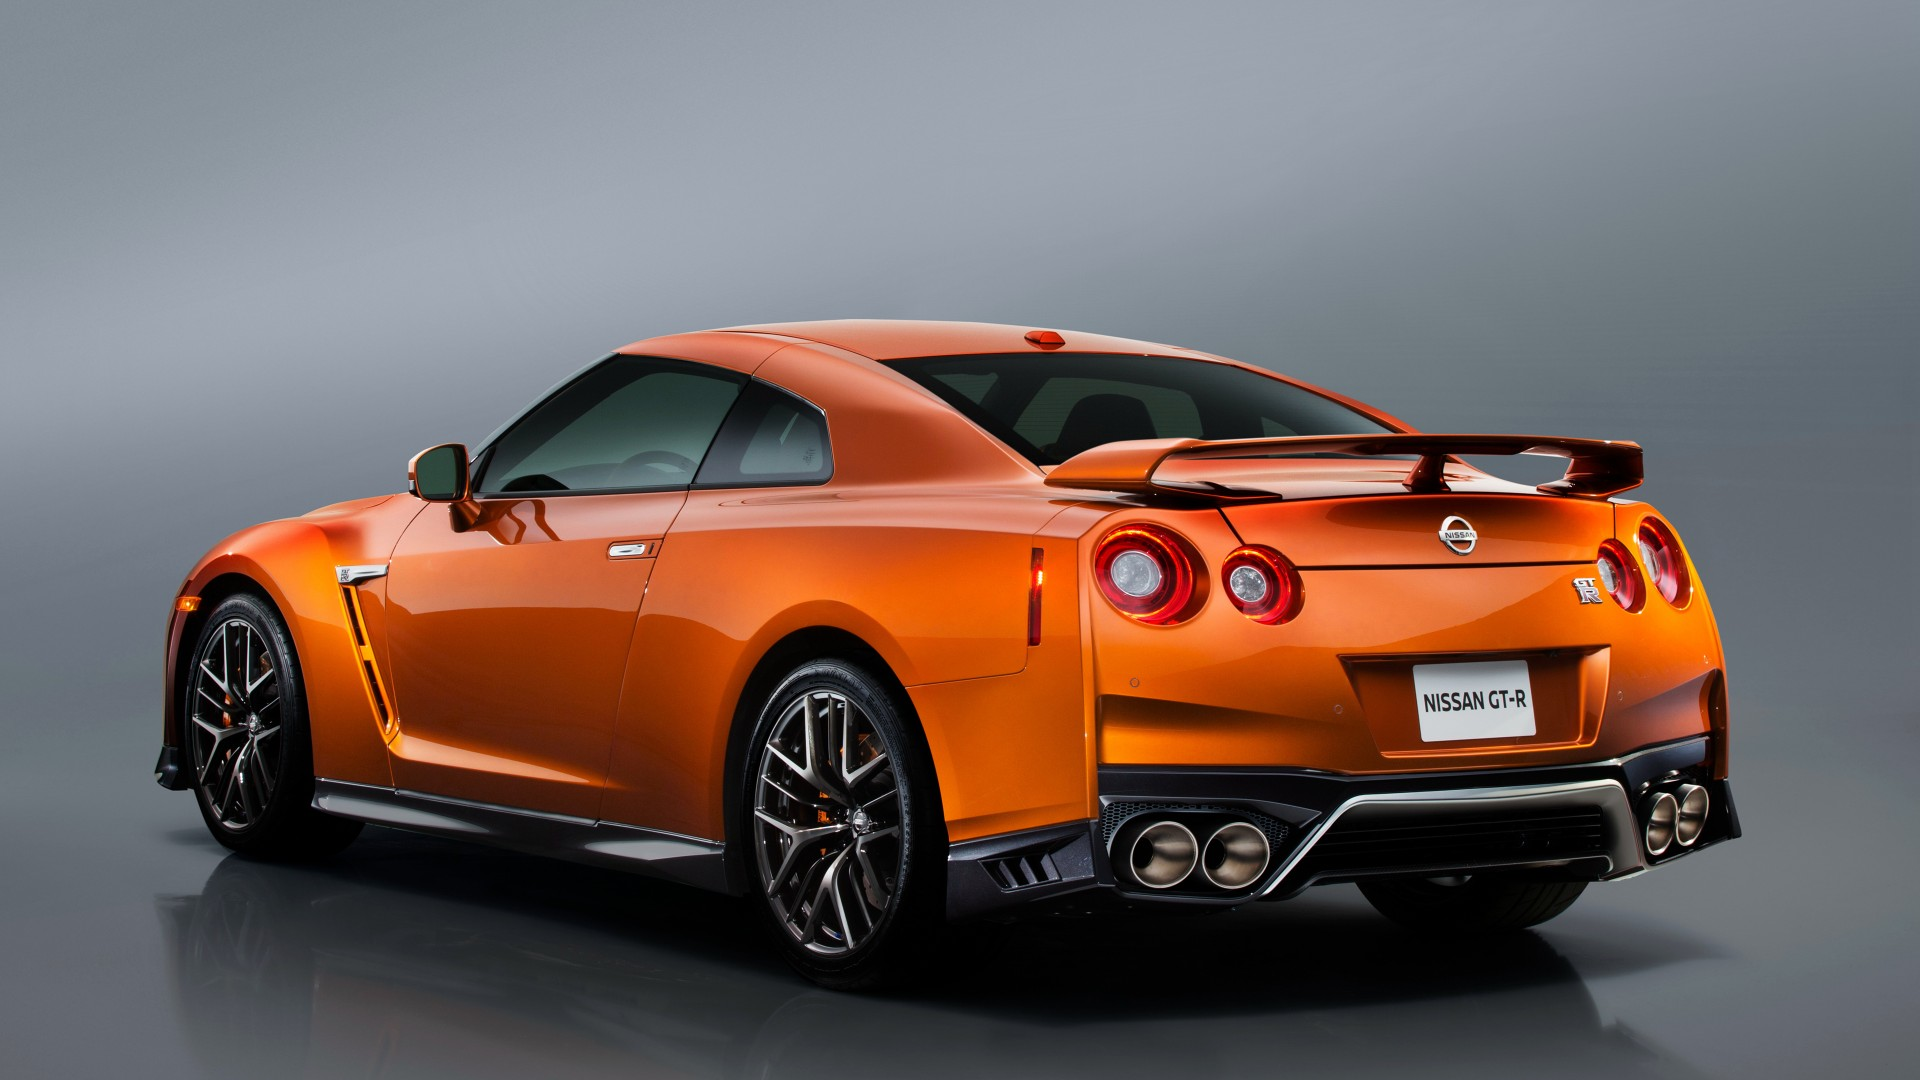 Nissan Gt R 2017 Us Wallpapers And Hd Images: 2017 Nissan GT R 4K Wallpaper